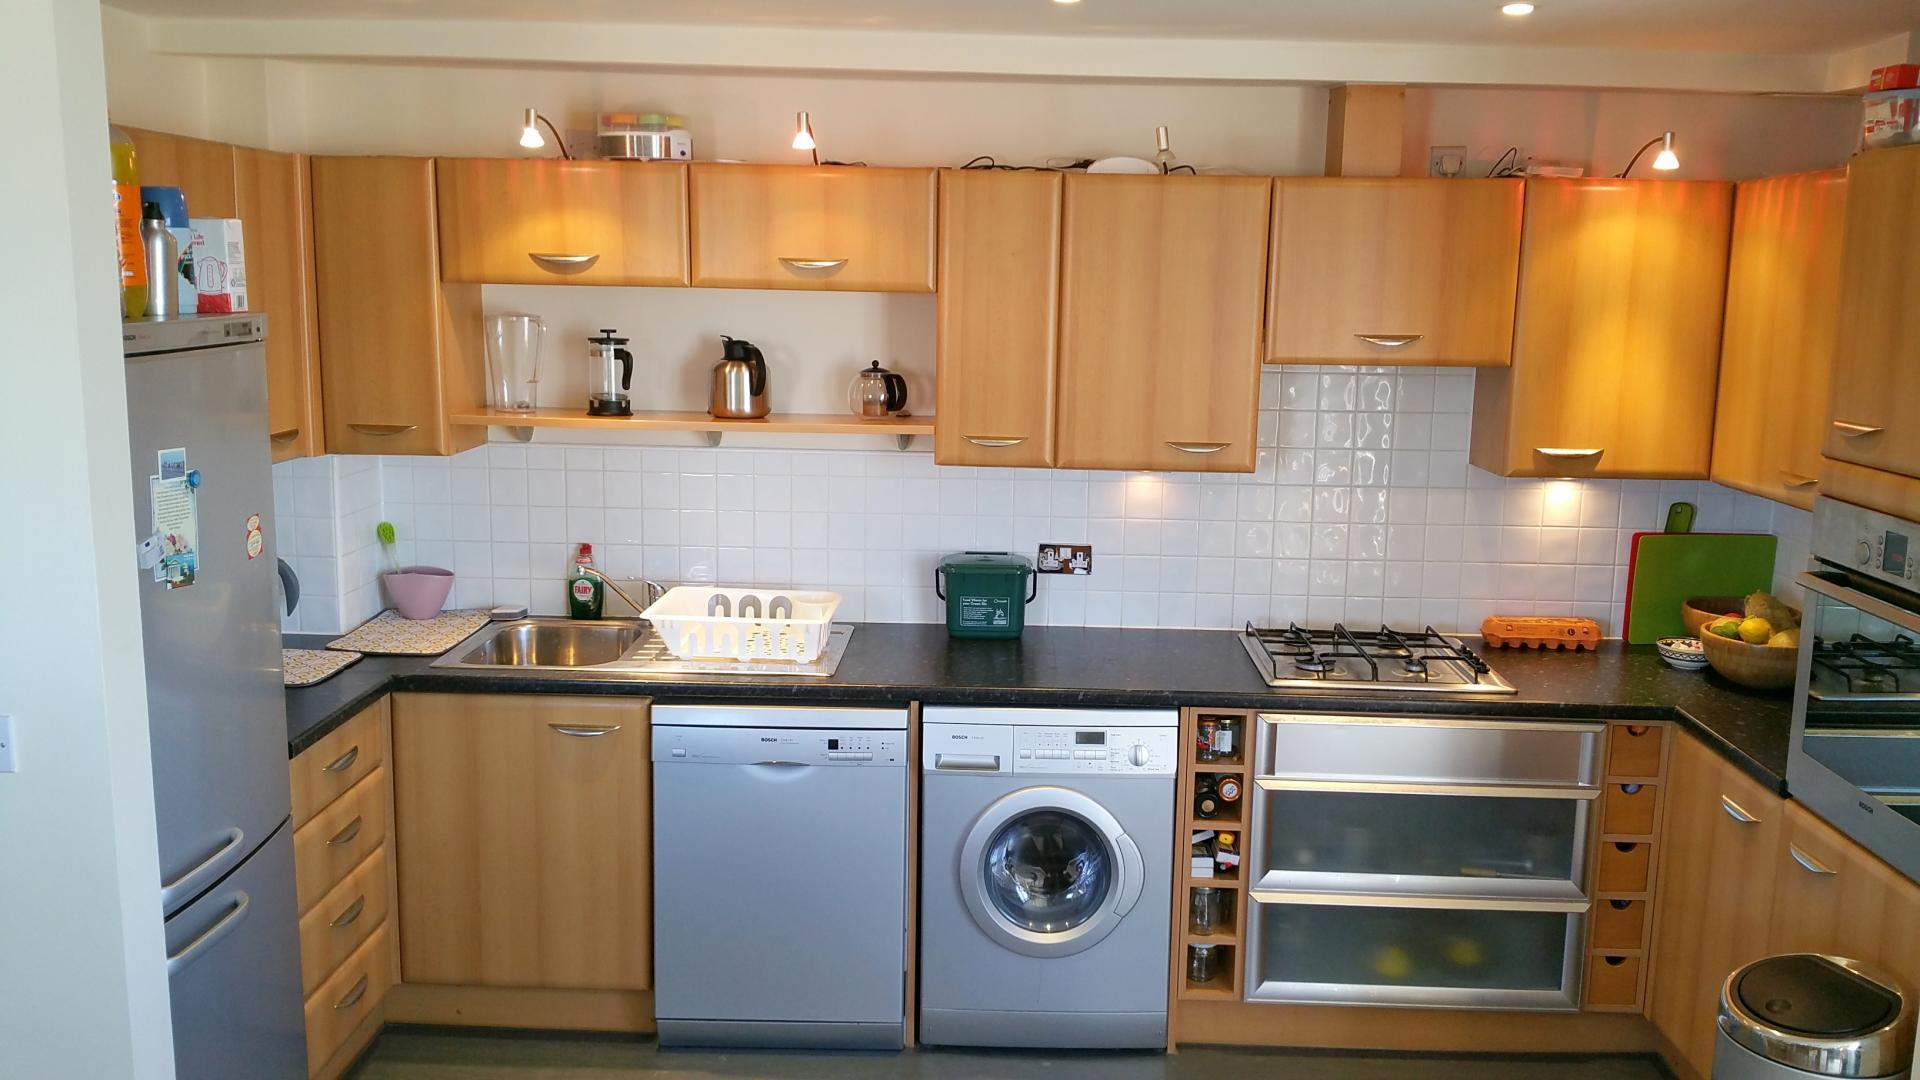 Kitchen at Central Station Apartment, Mill Road, Cambridge - Citybase Apartments